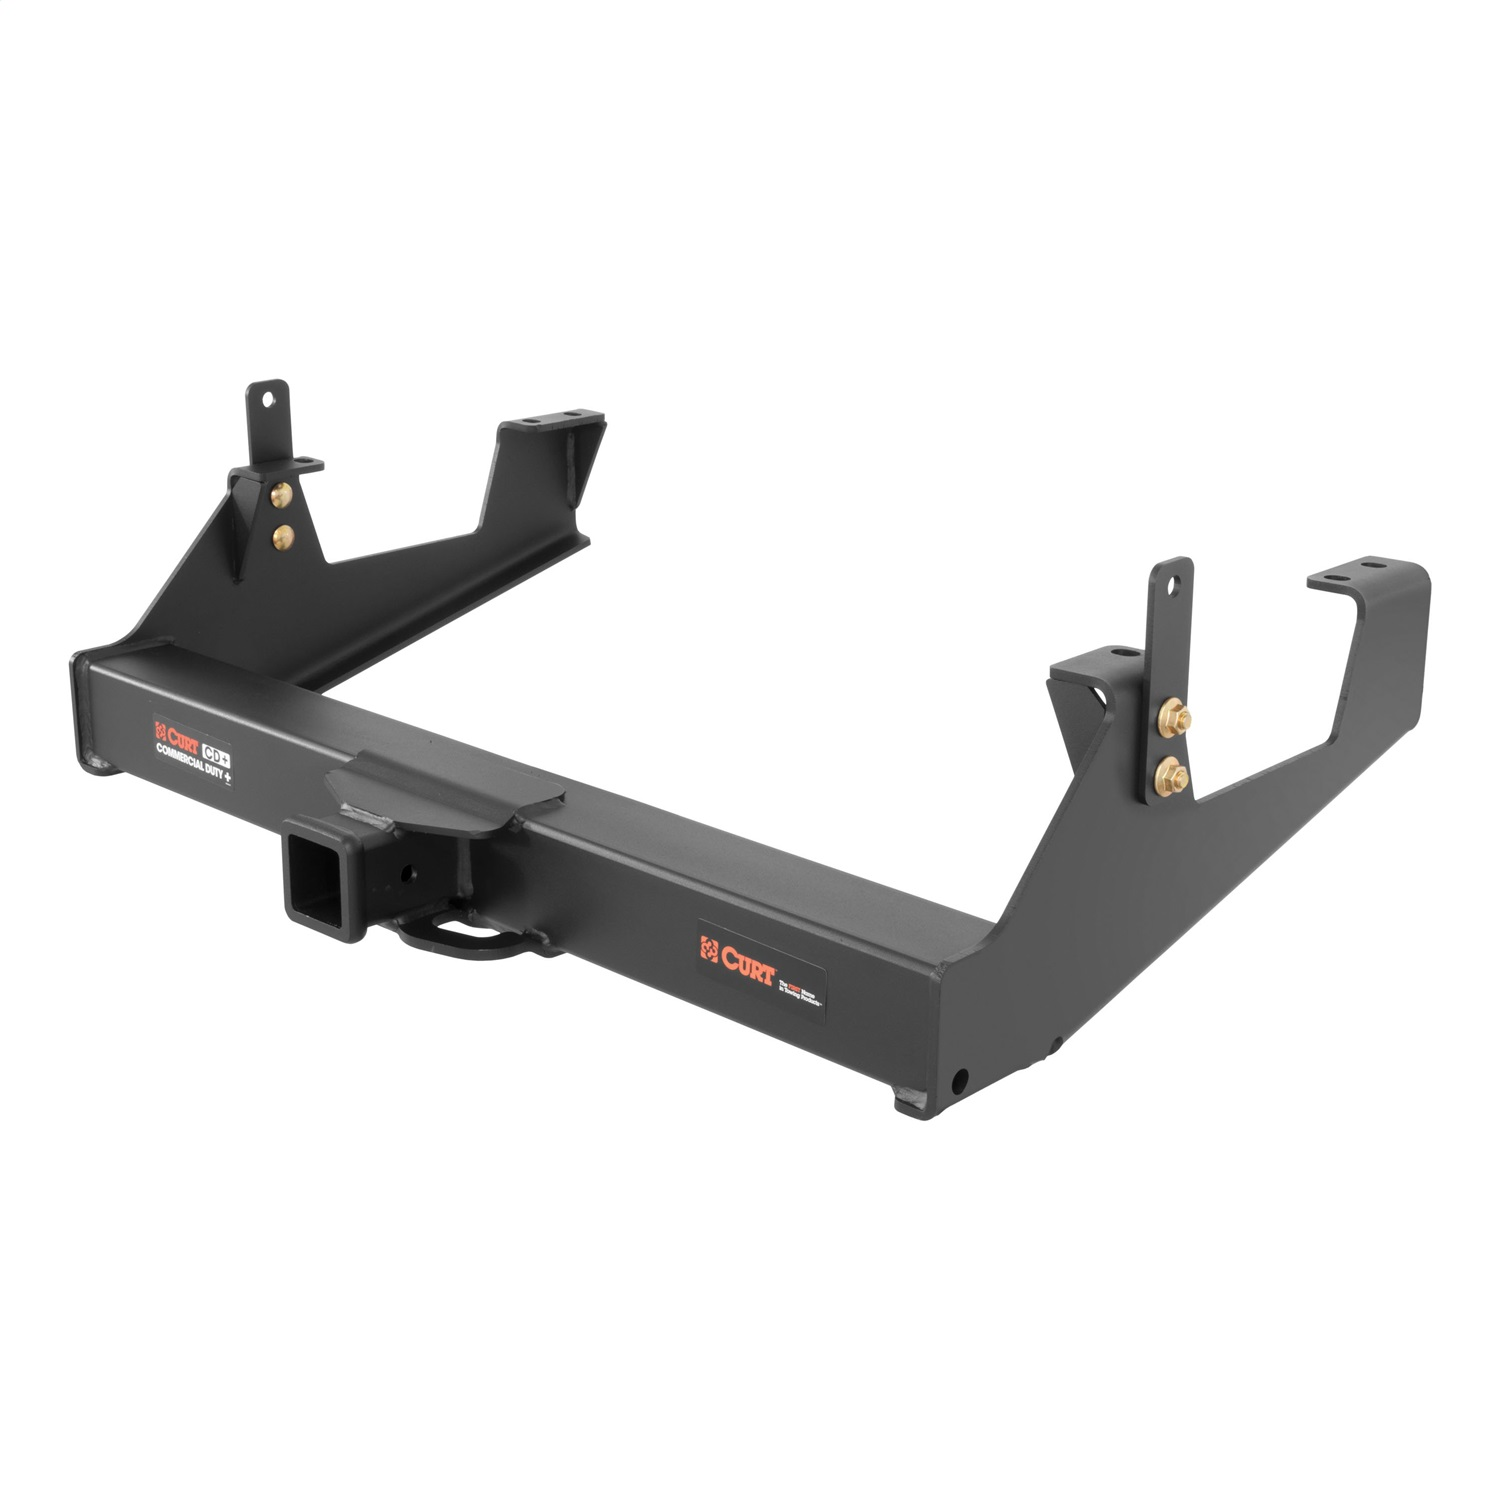 Class V 2.5 in. Commercial Duty Hitch, Rear, 20000lbs. Gross Trailer Weight/Weight Distributing, 2700lbs. Tongue Weight/Weight Distributing Tongue Weight